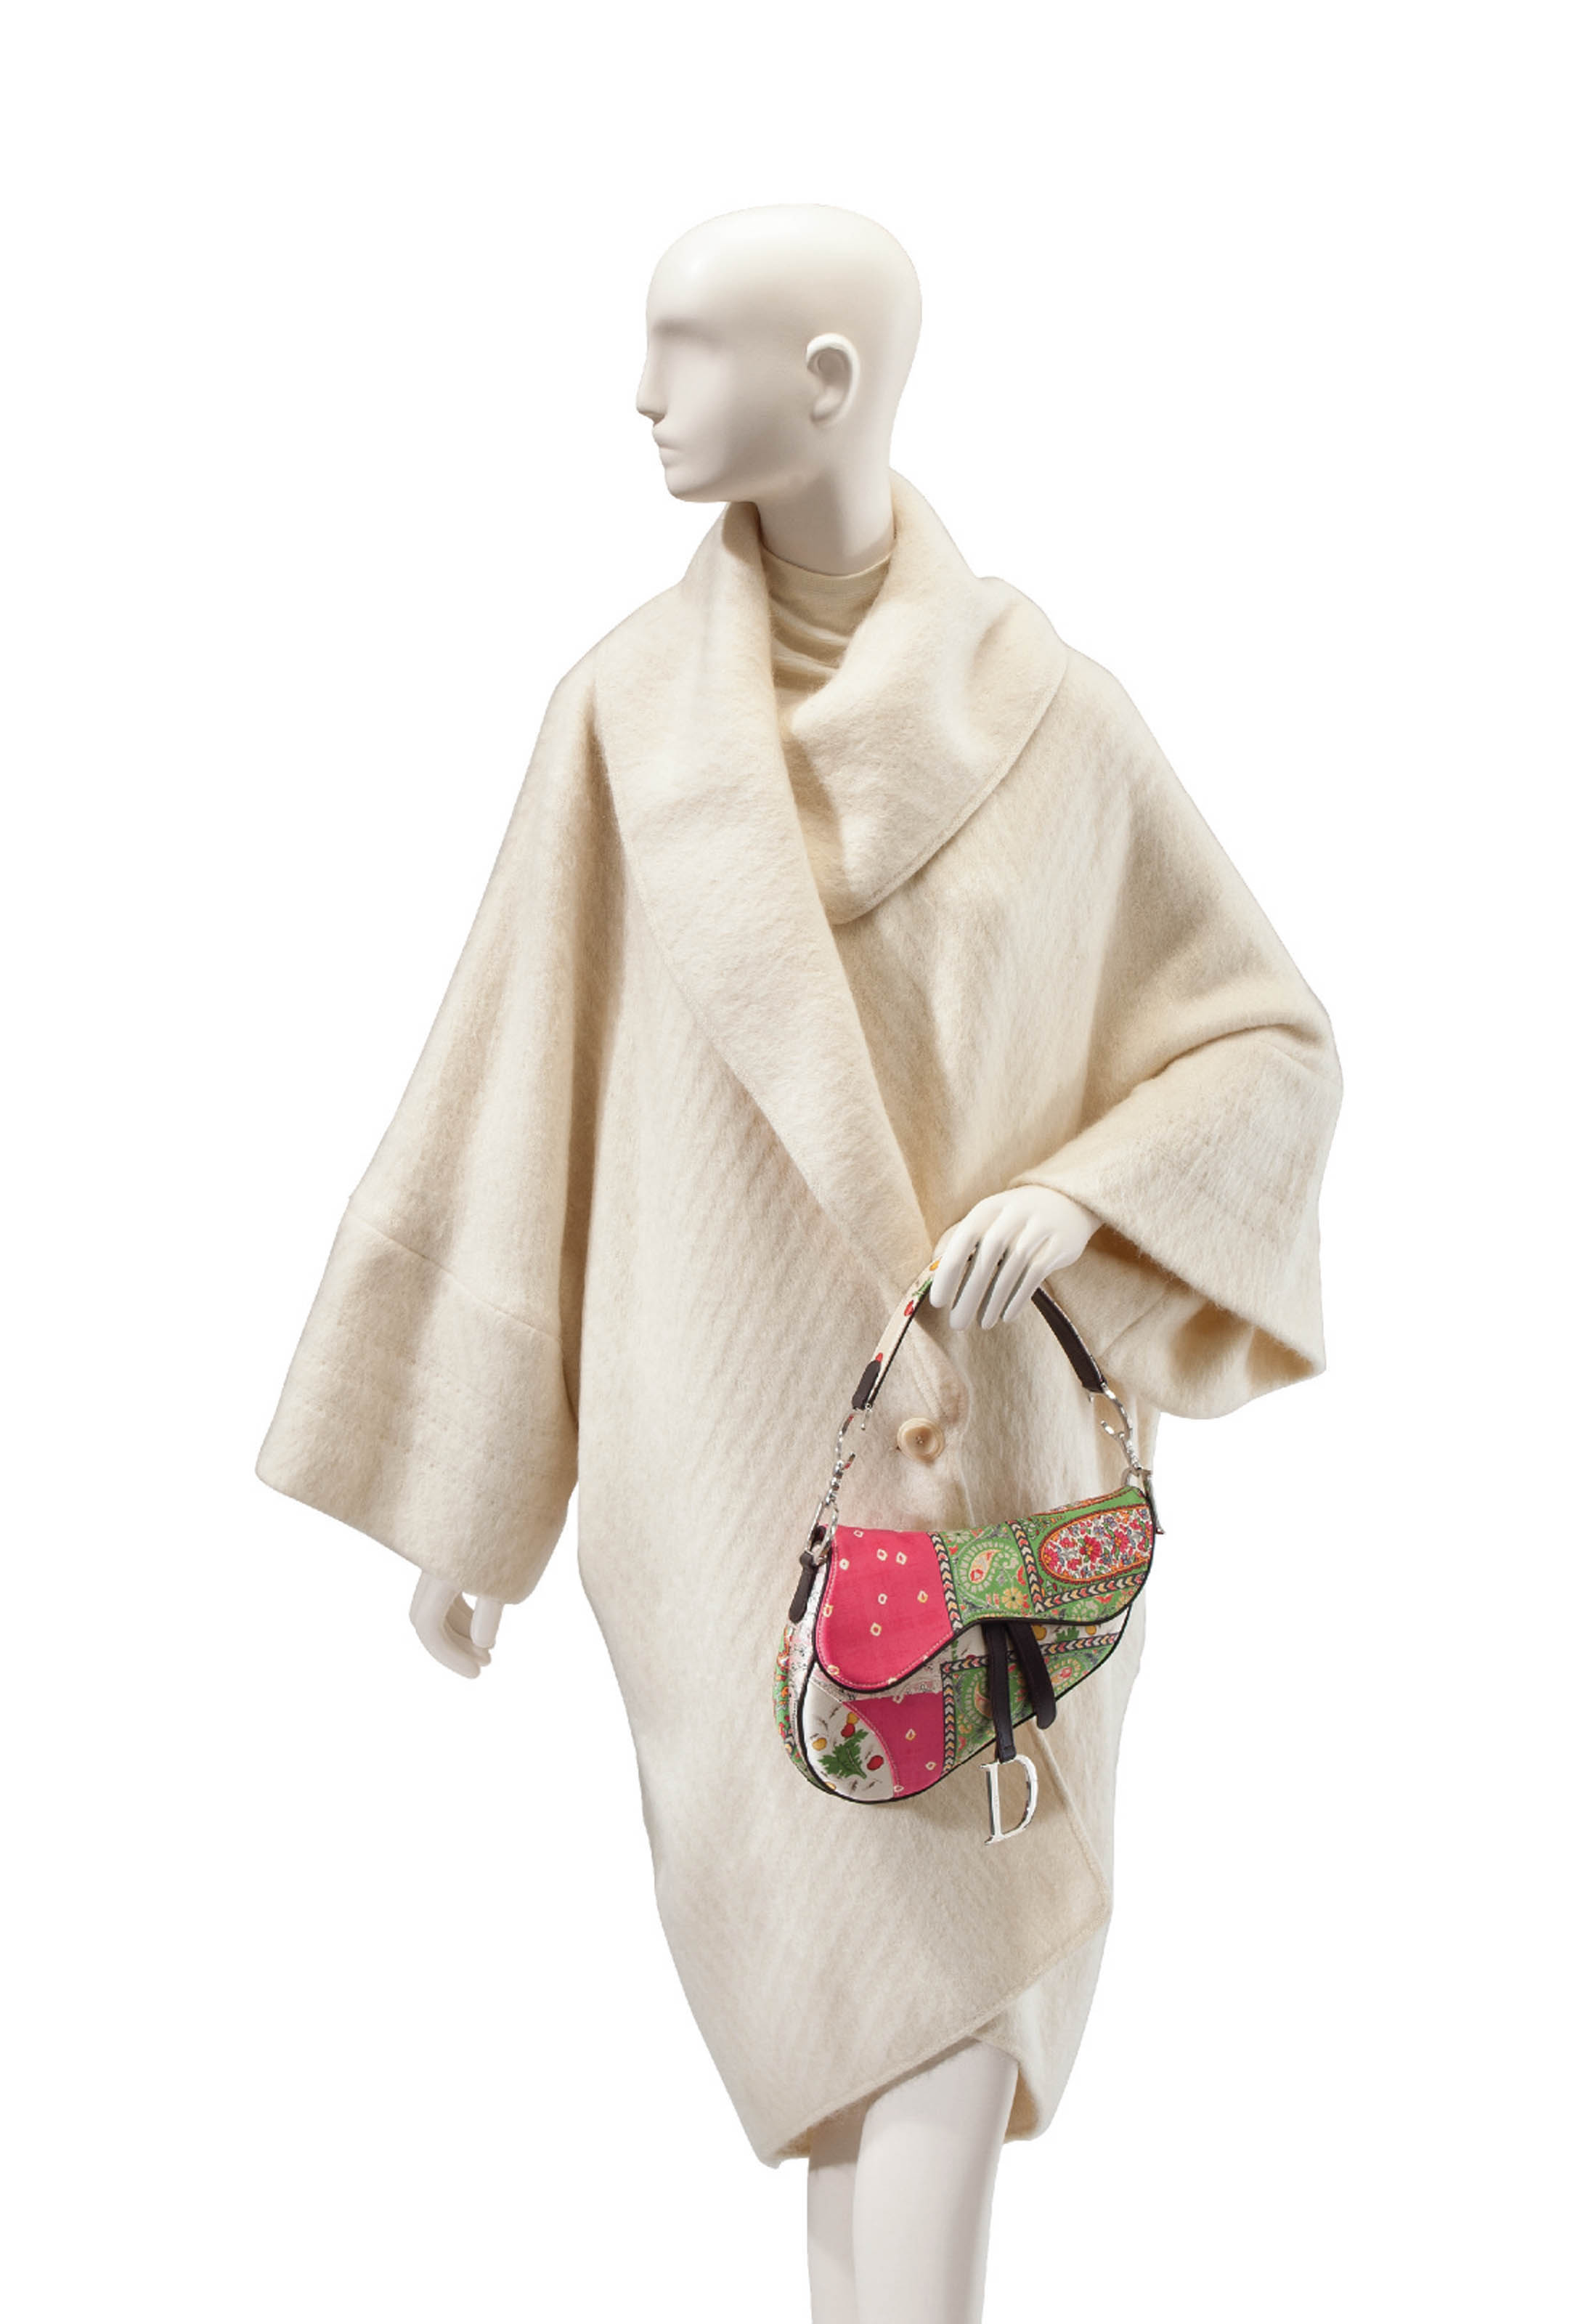 A GALLIANO WHITE MOHAIR SWEATER COAT AND A CHRISTIAN DIOR SADDLE BAG